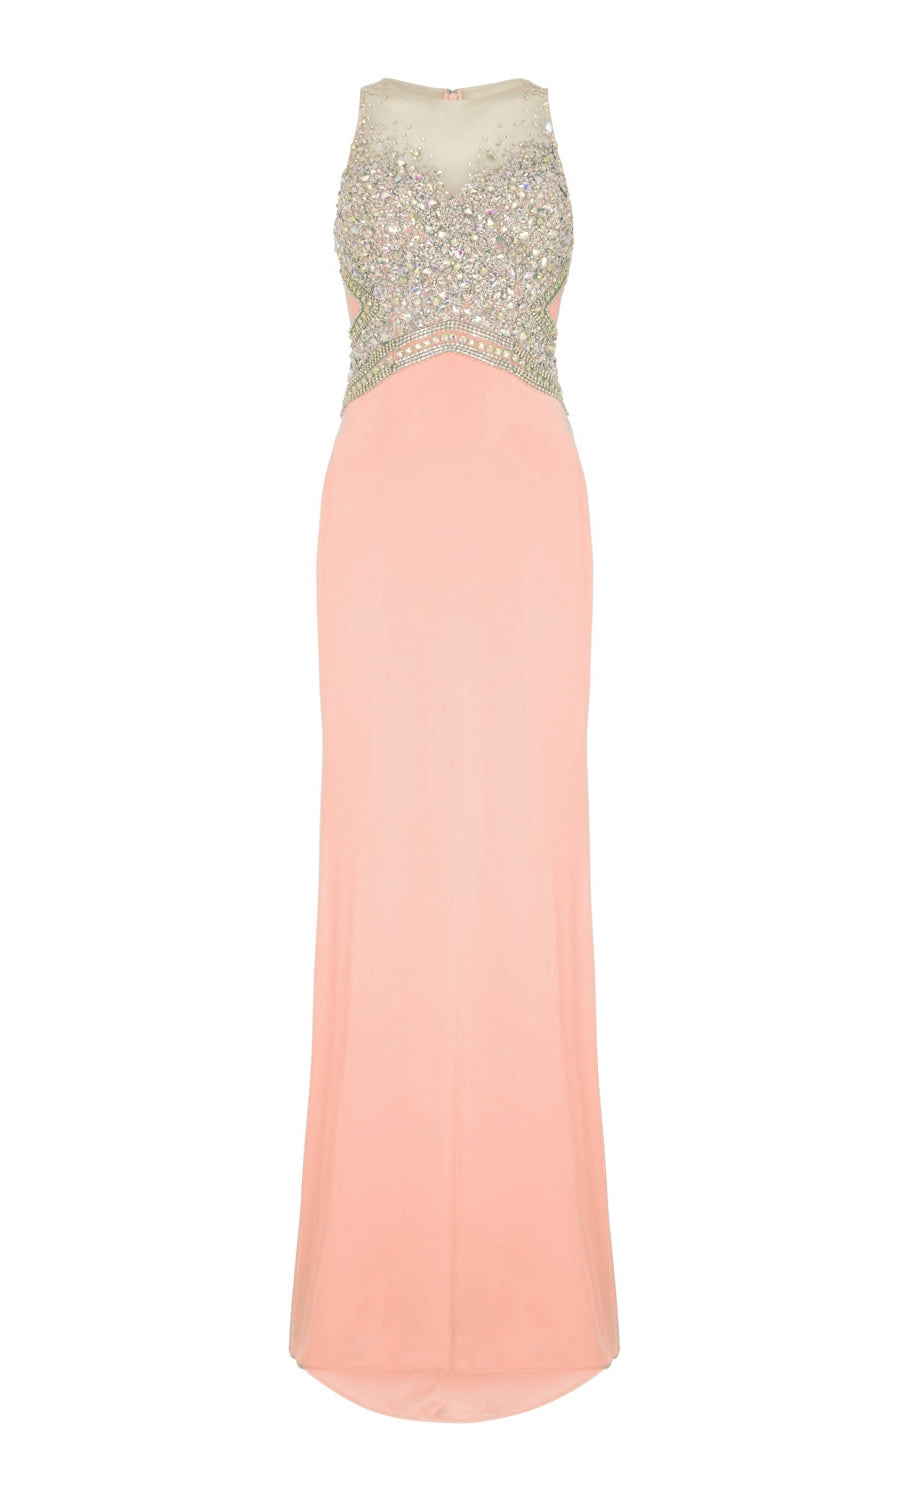 1022808 Coral Dynasty Evening Dress With Silver Beading